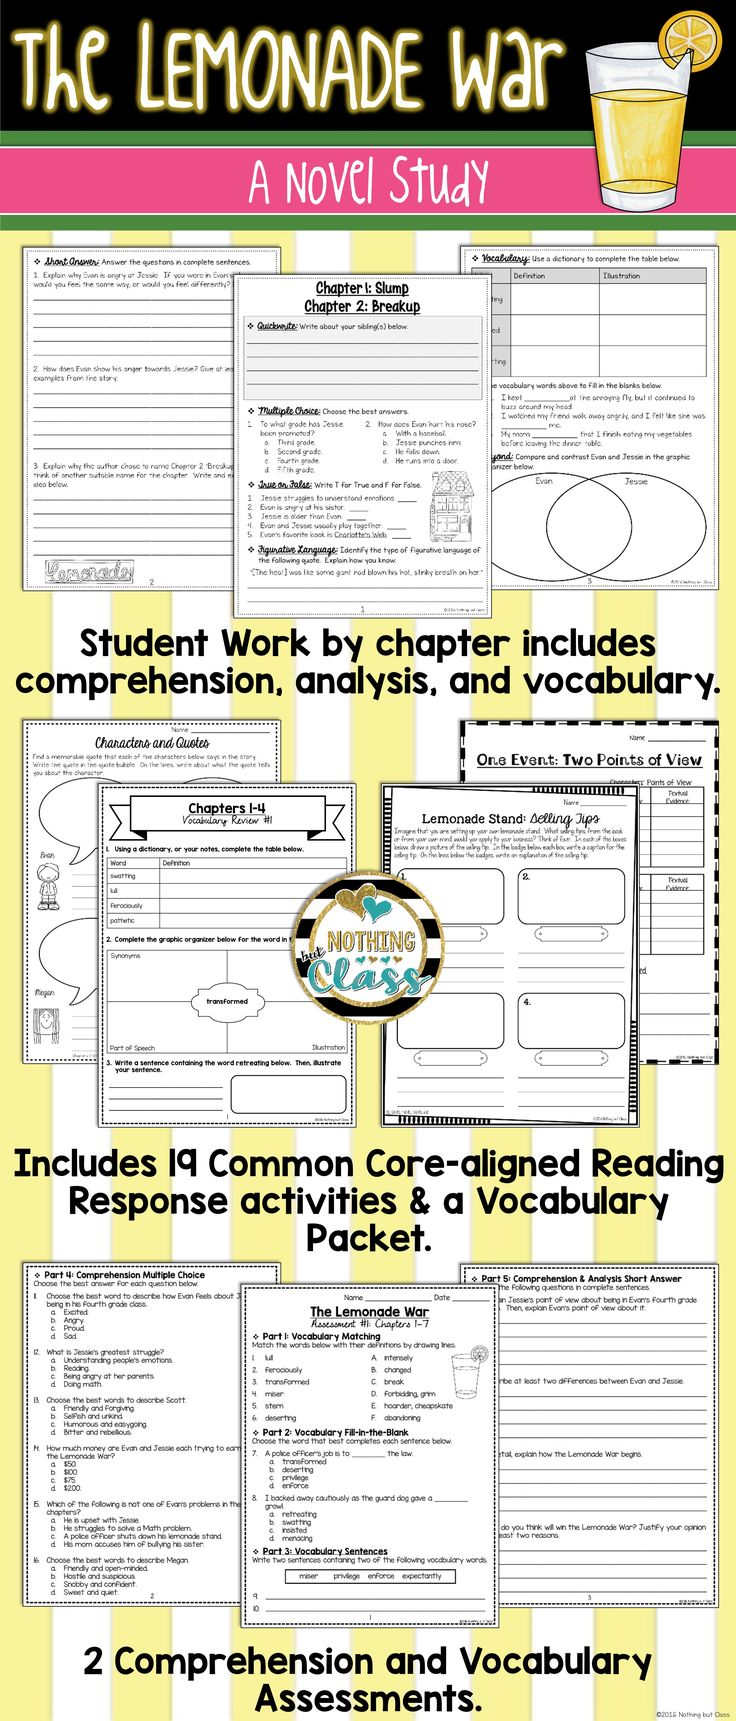 This novel study for The Lemonade War, by Jacqueline Davies, contains 139 pages of resources, including comprehension, vocabulary, Common Core-aligned reading response activities, assessments, and more.  Focus standards include figurative language, setting, character analysis, theme, and plot. Easy to use and student-friendly!